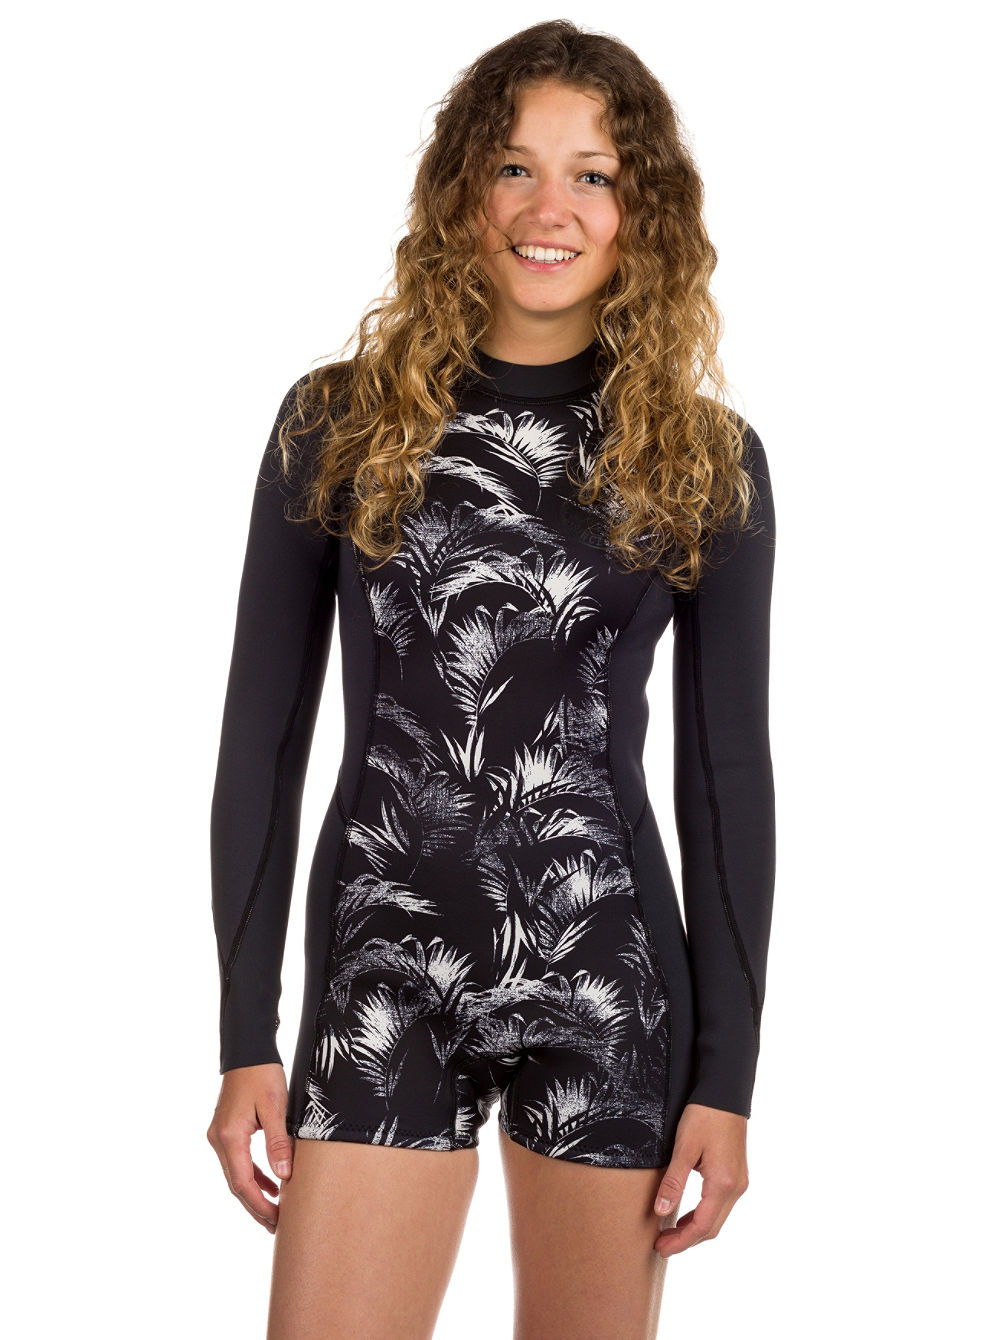 Surf Capsule Spring Fever LS Wetsuit